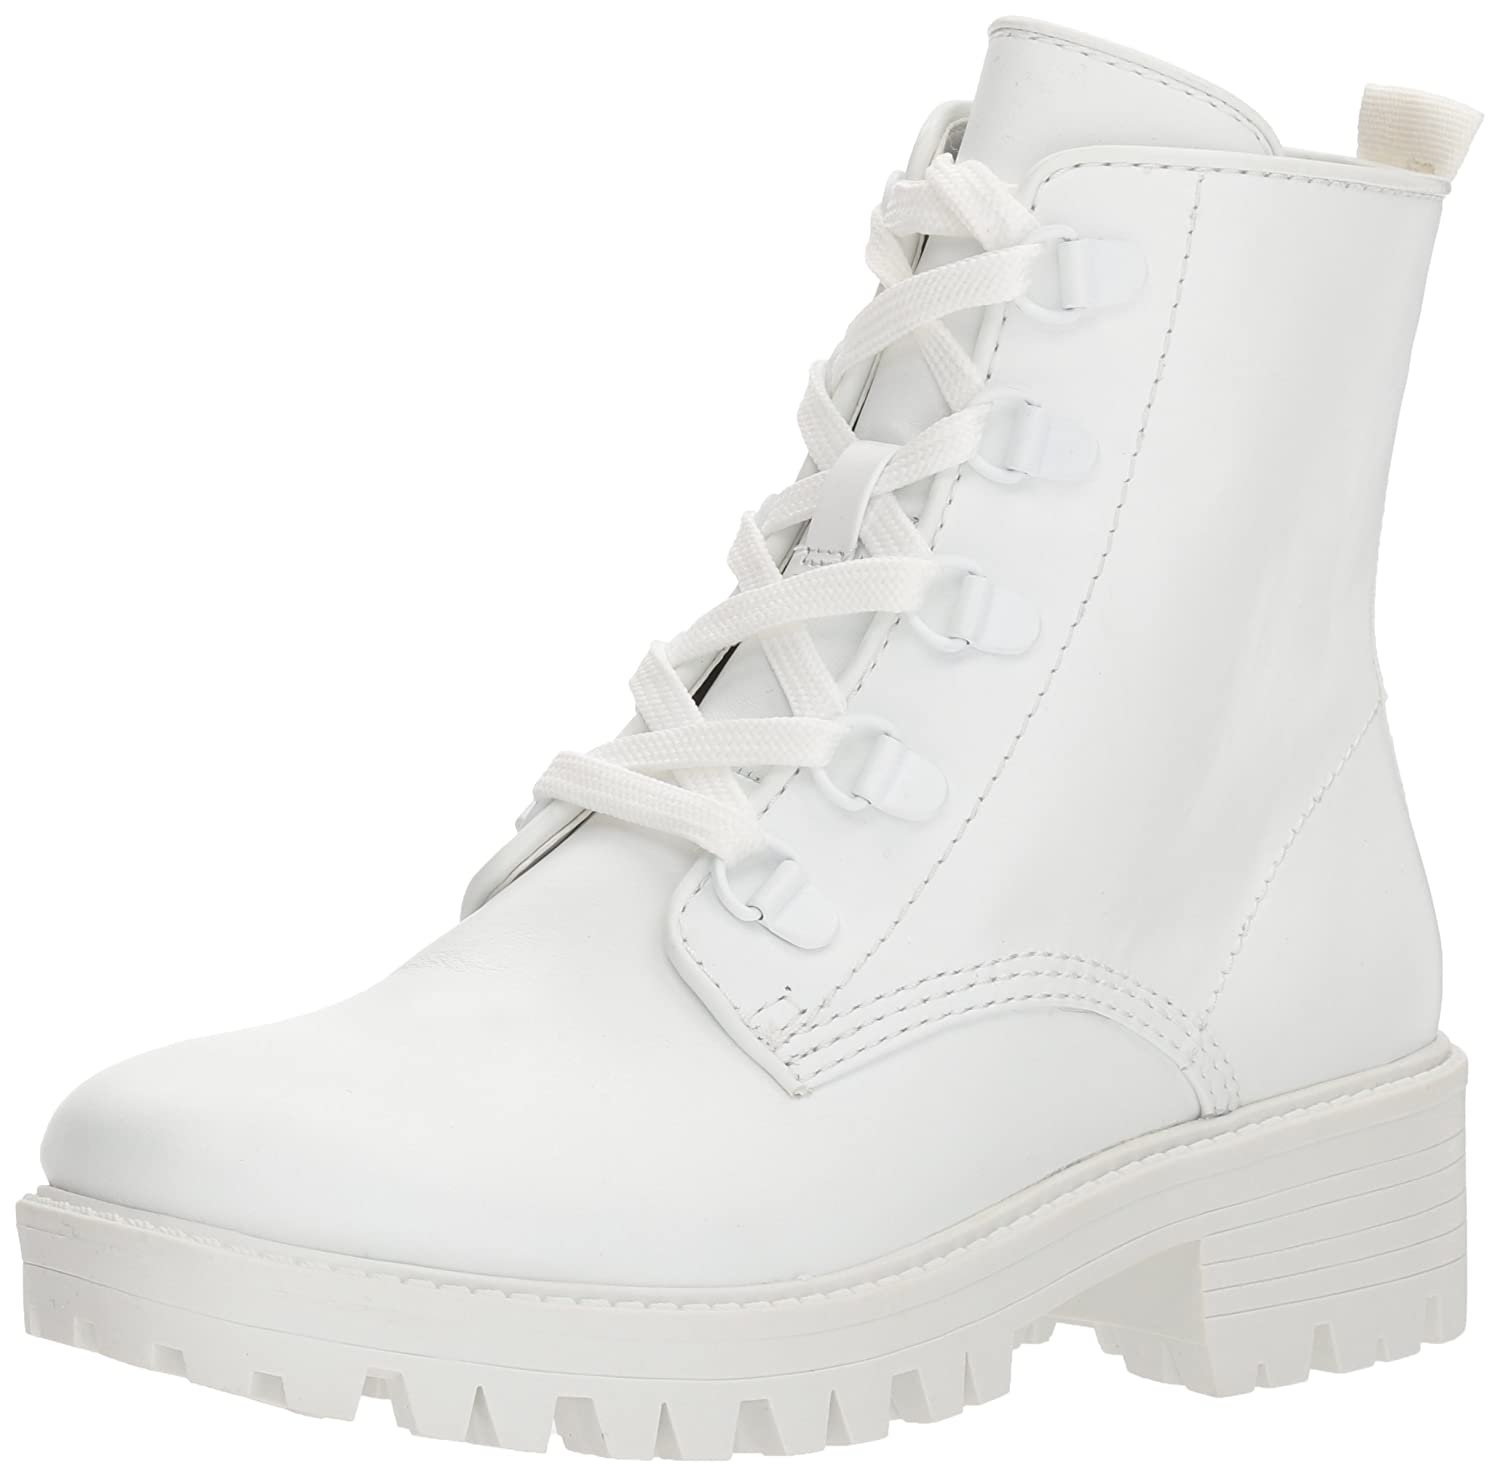 KENDALL + KYLIE Women's Epic Ankle Boot B078NGCP99 6 B(M) US|White